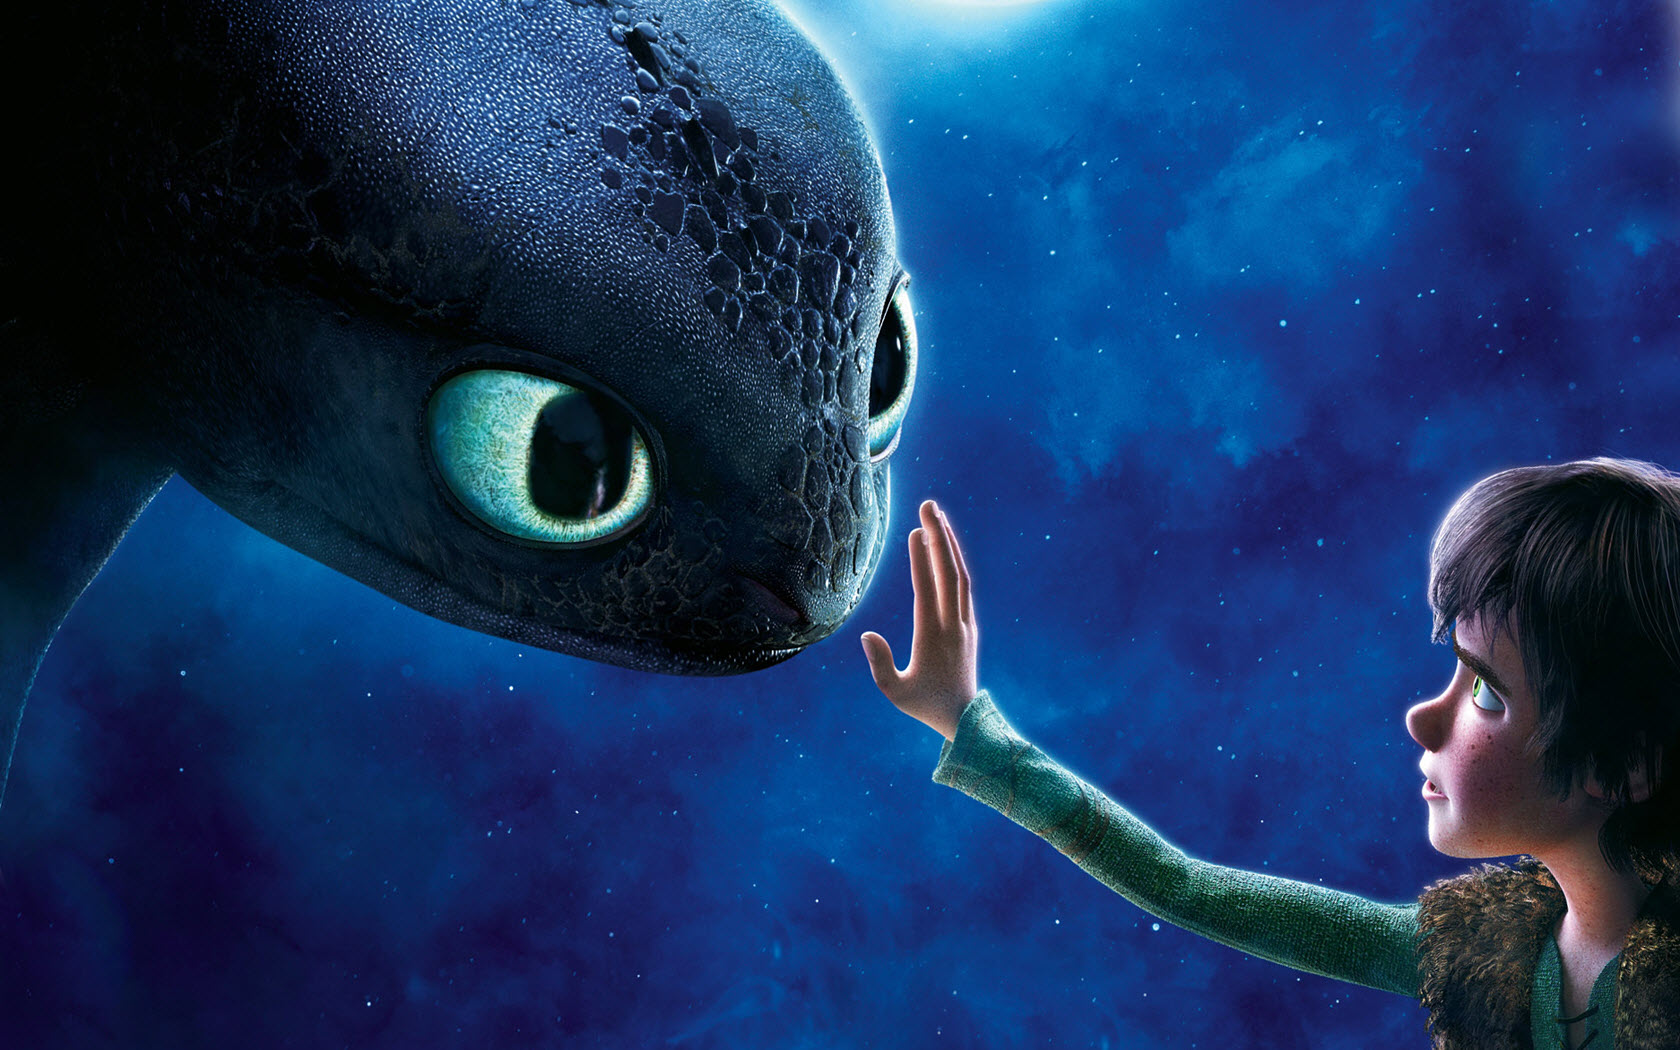 How to train your dragon @ Lucas Theatre, Savannah